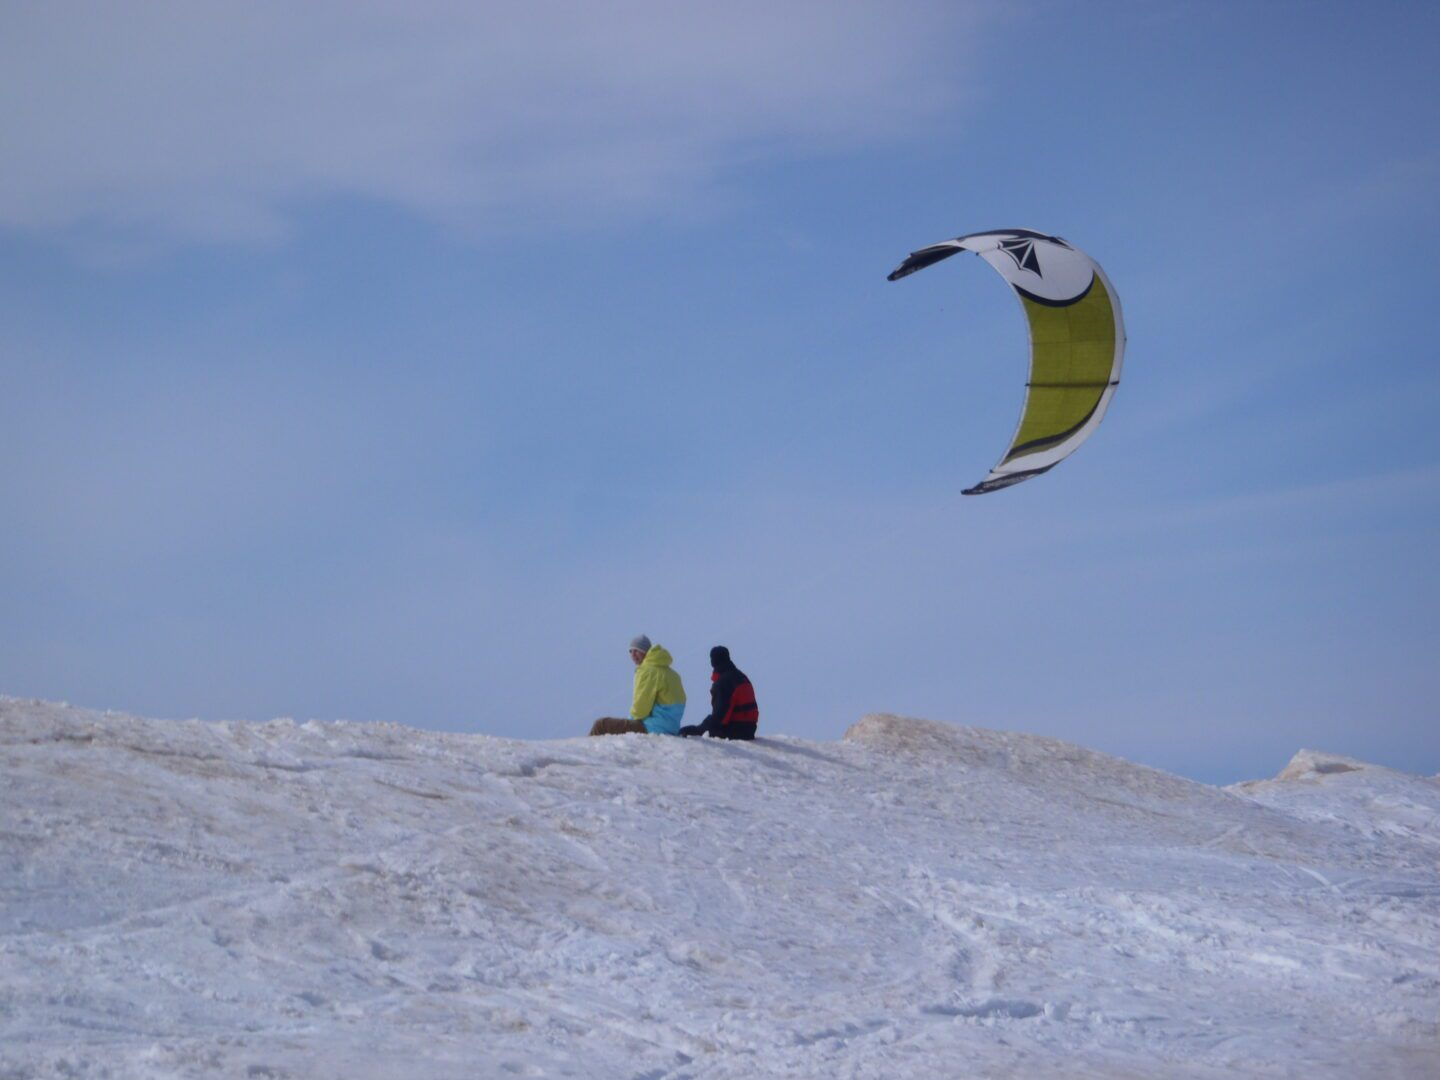 VIDEO: Snowkiting the Last days of winter at Pere Marquette